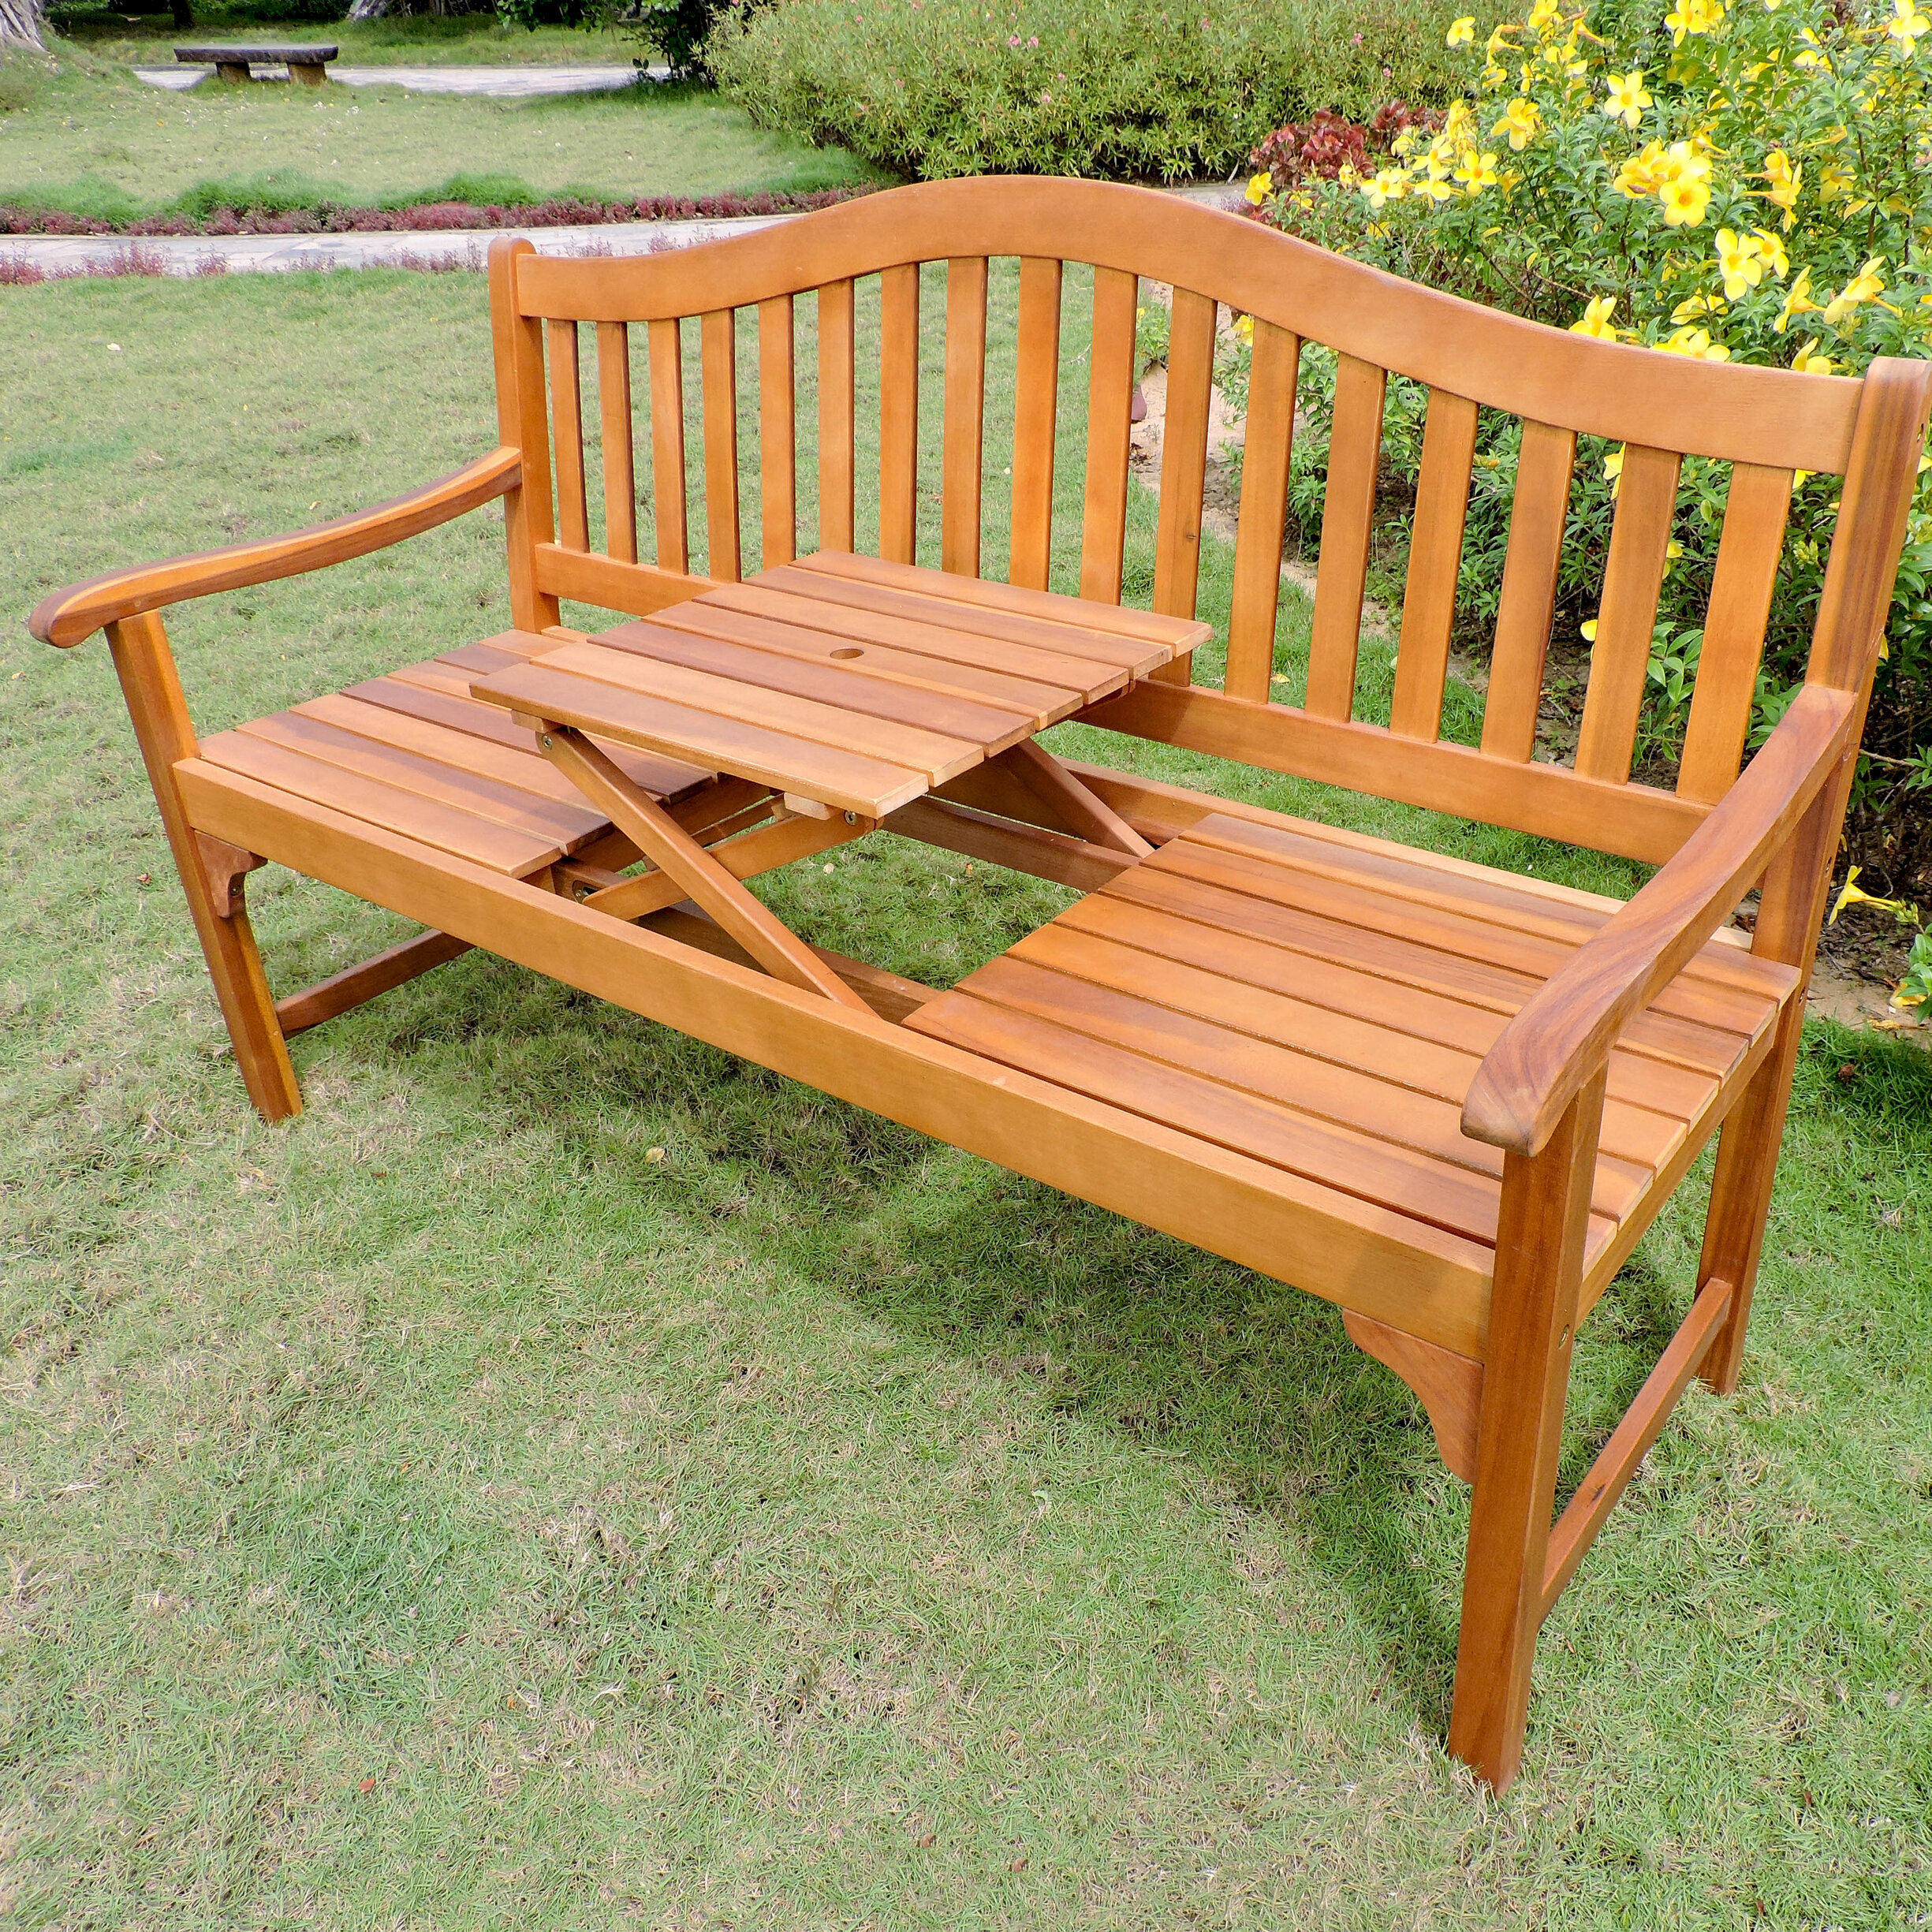 Leone Wooden Garden Bench Intended For Elsner Acacia Garden Benches (View 13 of 25)